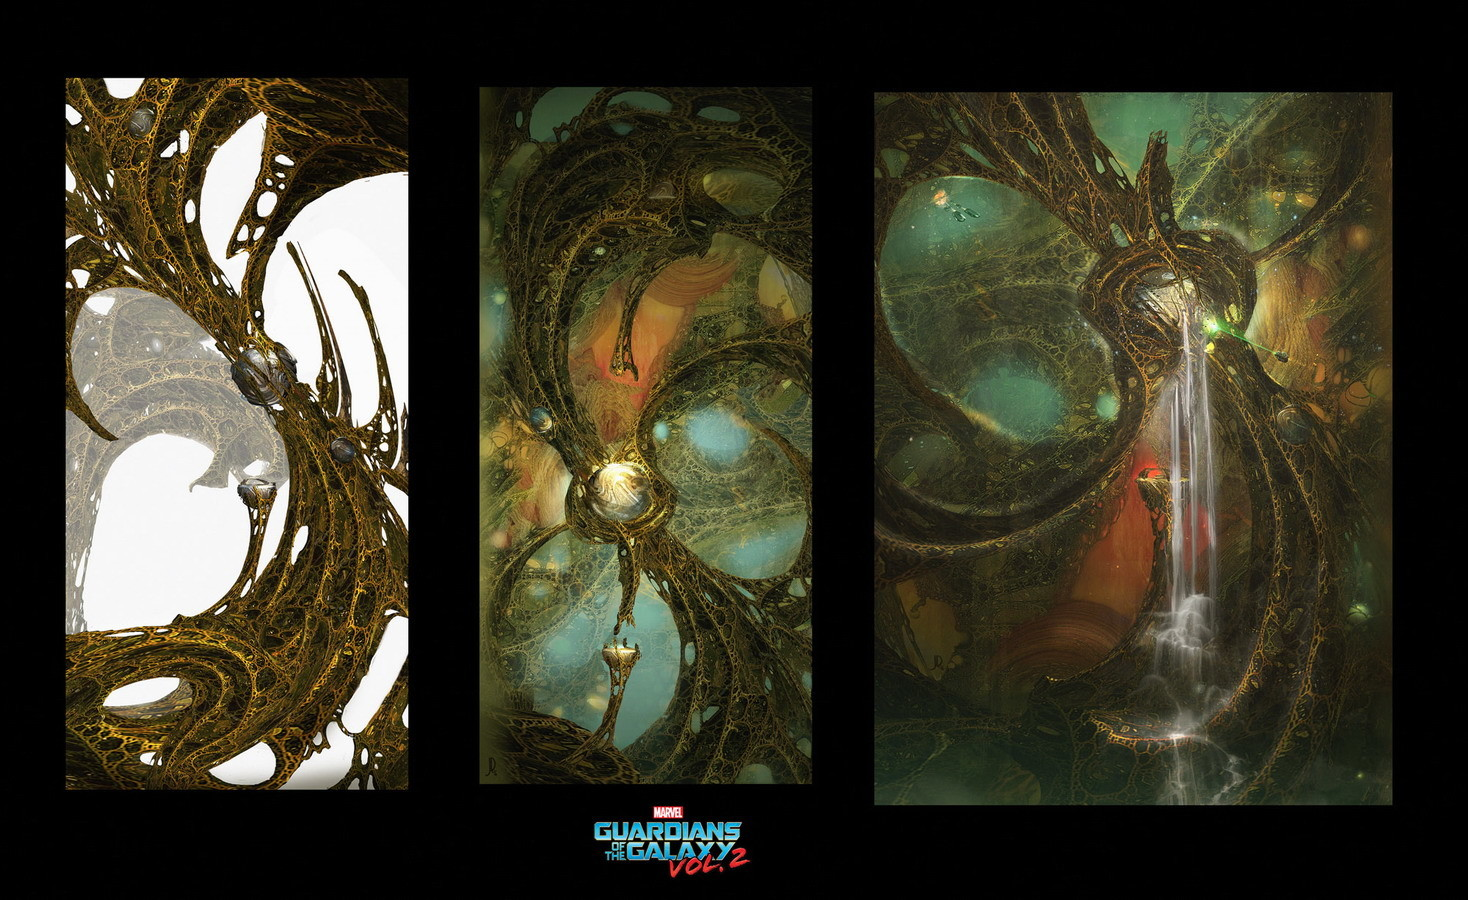 Guardians of the Galaxy Vol.2 Concept Art by John Dickenson